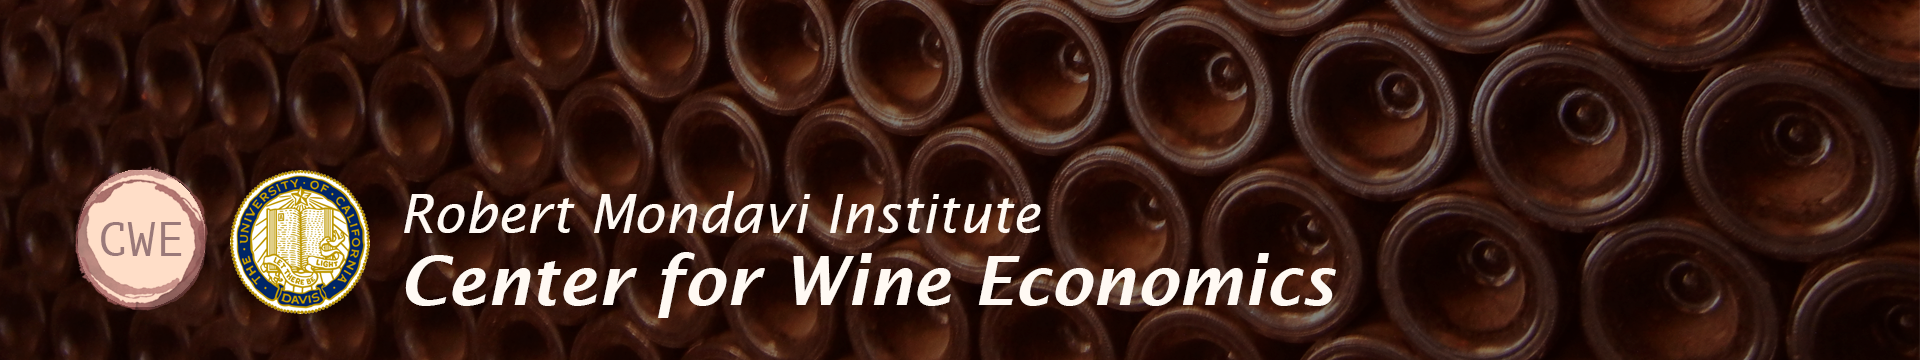 Center for Wine Economics